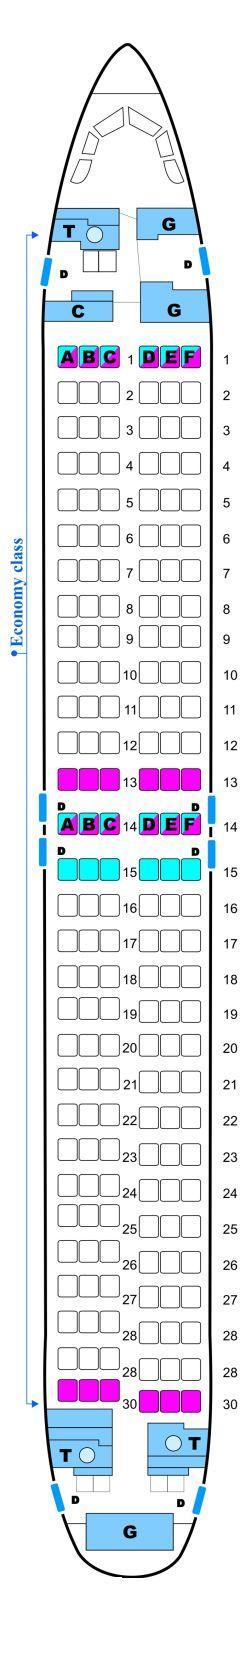 Seat map for Malev Hungarian Airlines Boeing B737 800NG Config. 2